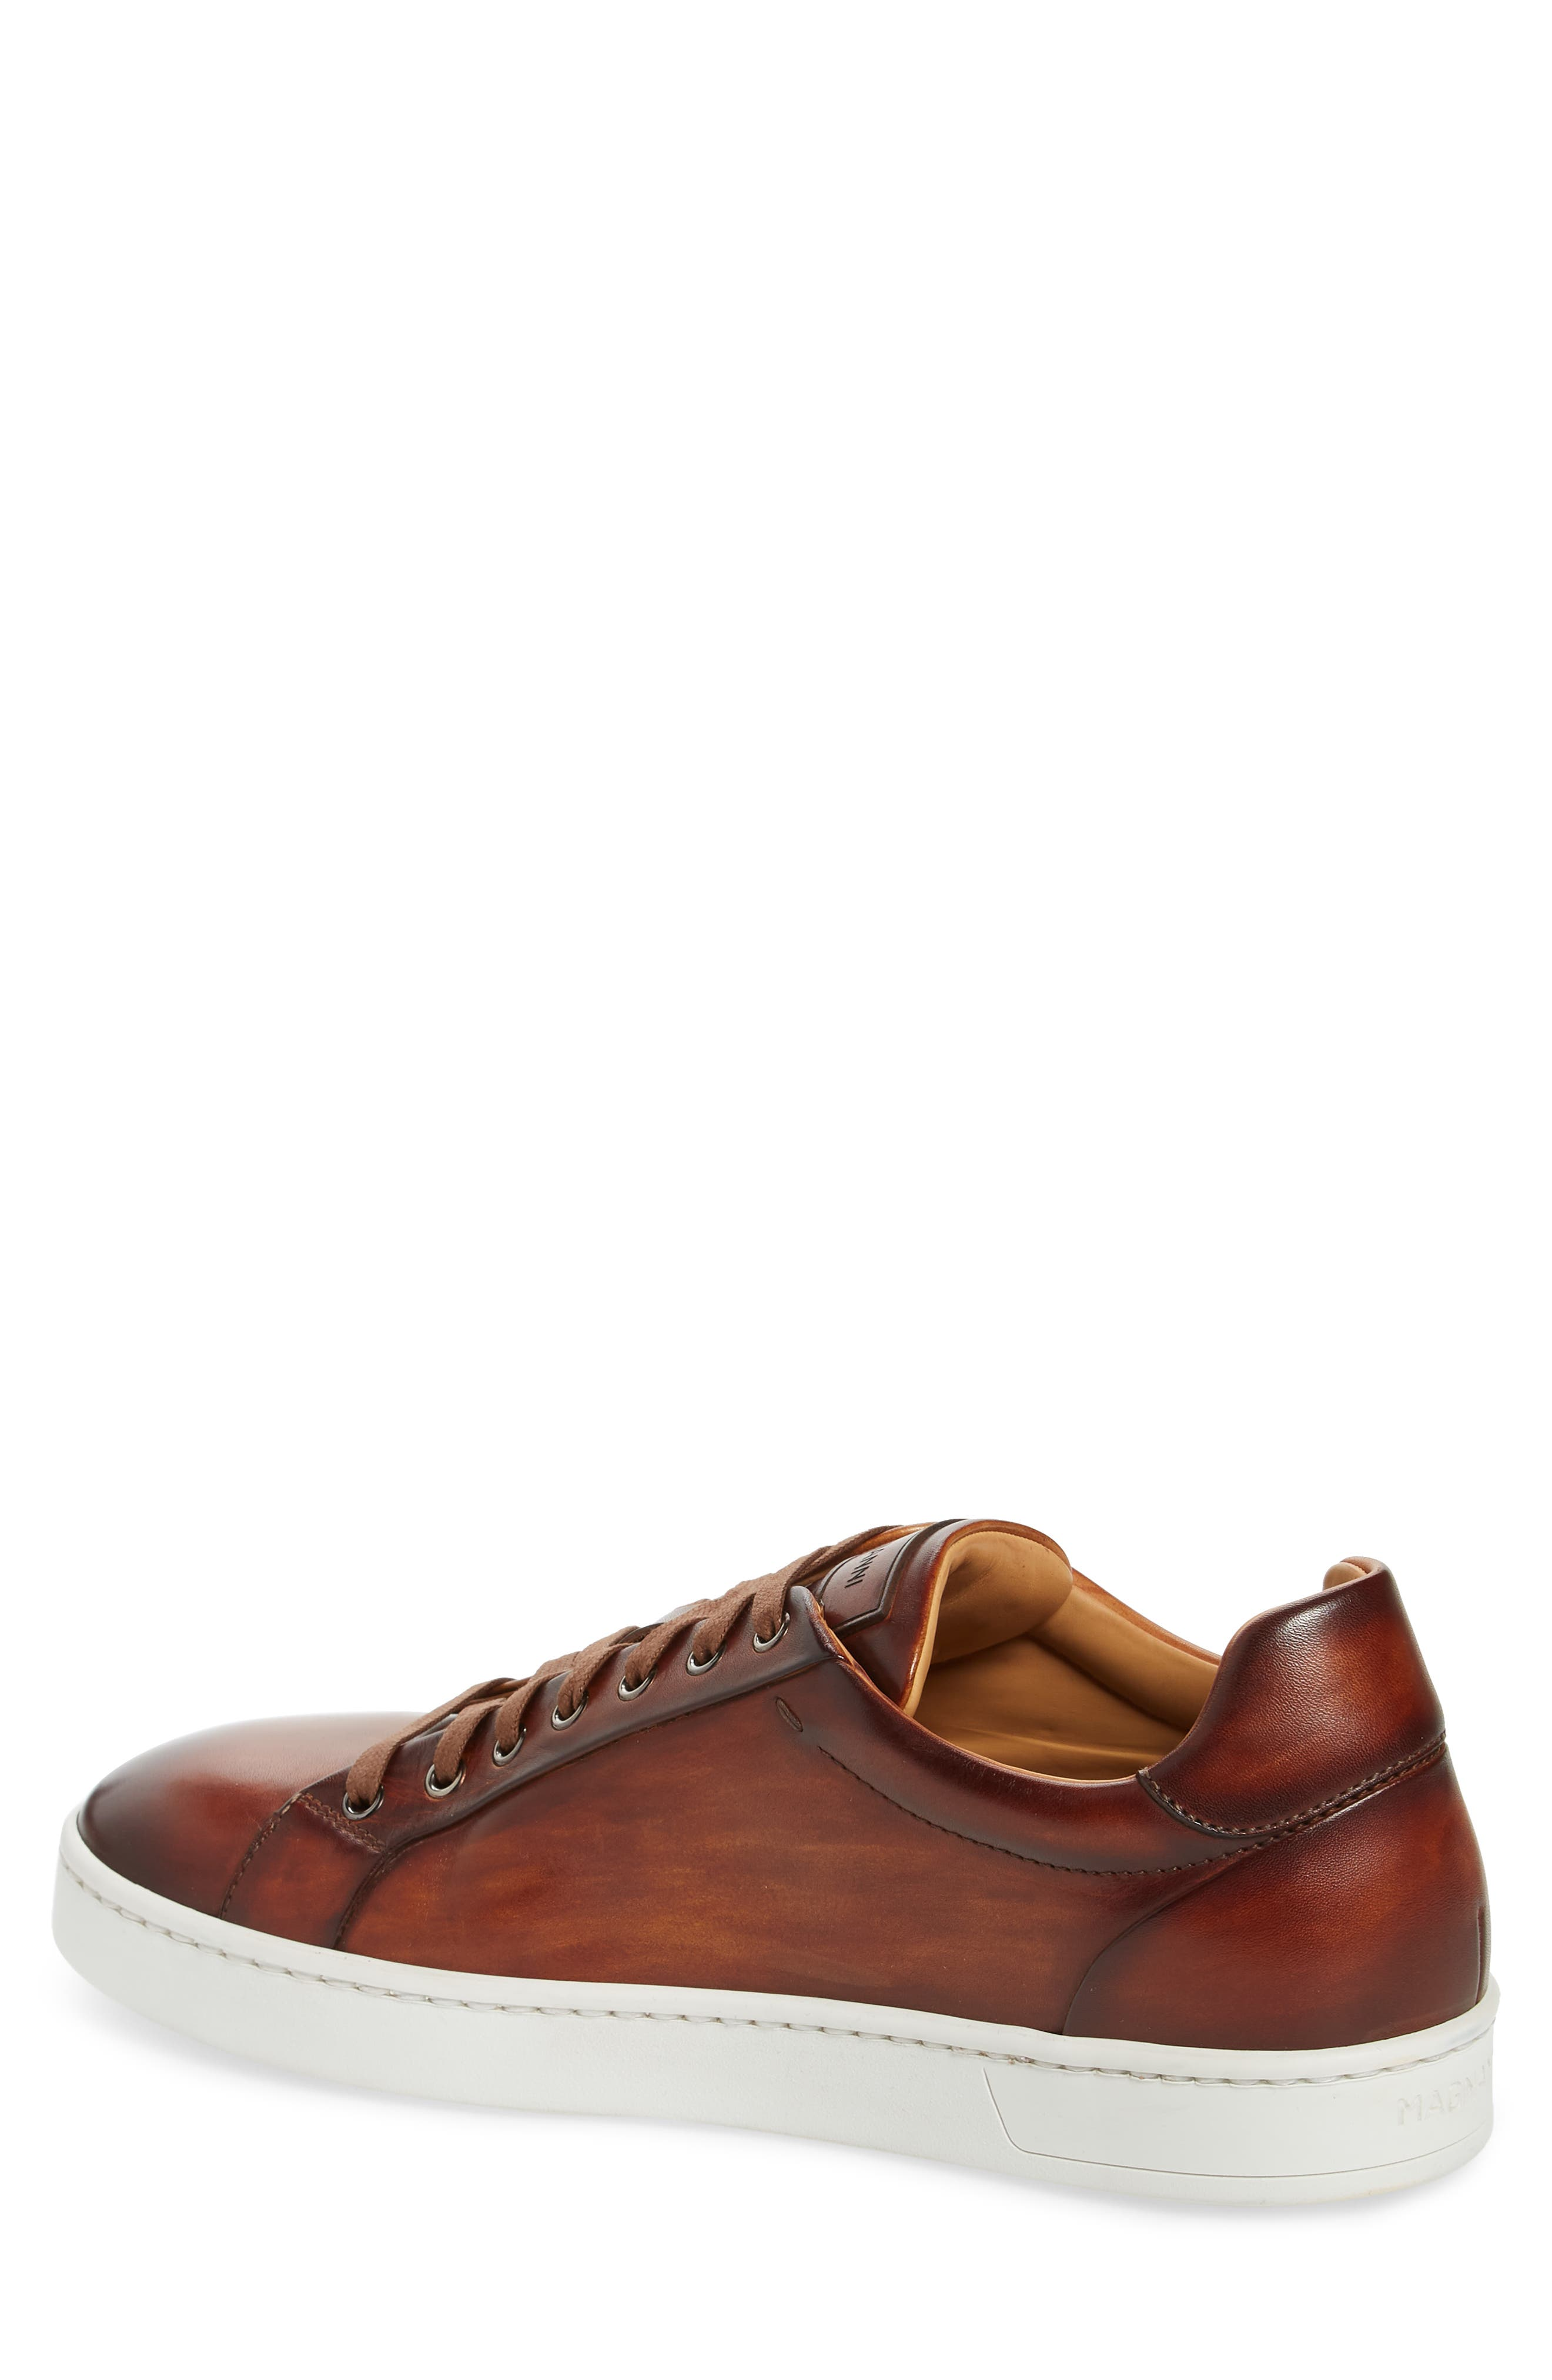 Elonso Low Top Sneaker,                             Alternate thumbnail 2, color,                             COGNAC LEATHER